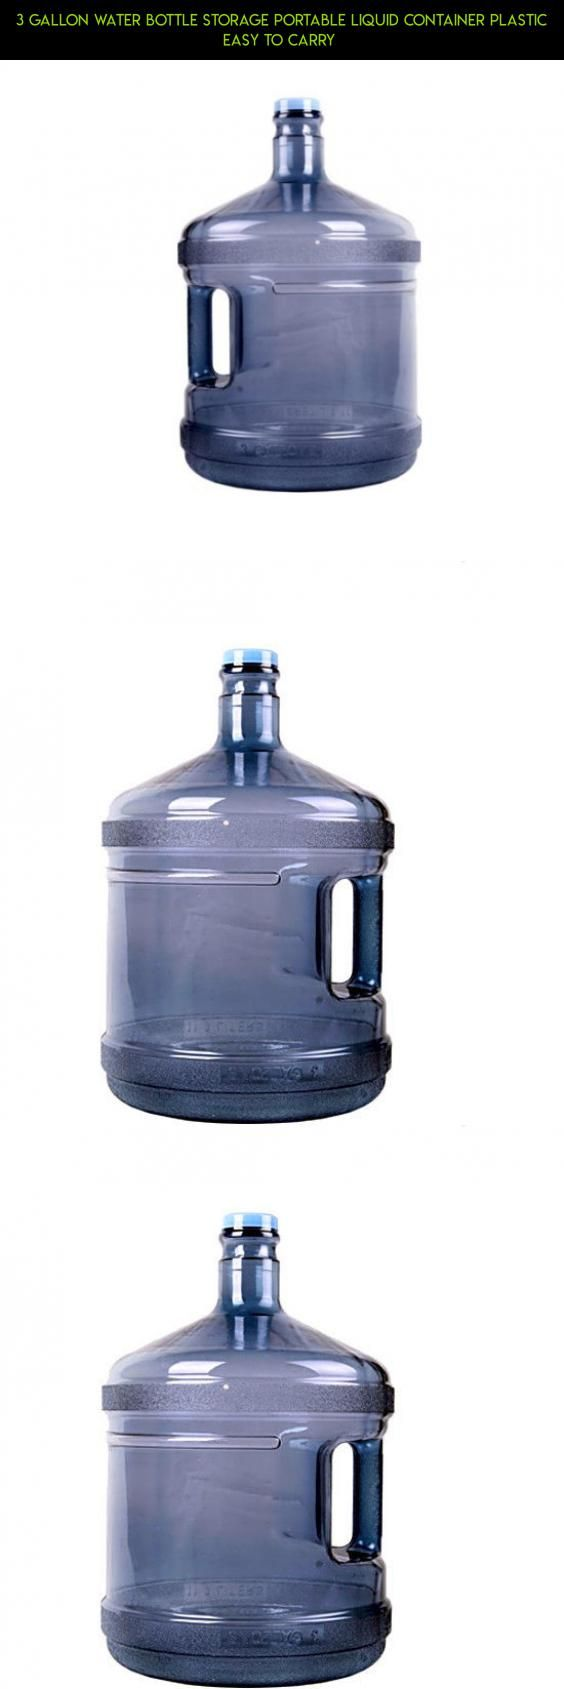 3 Gallon Water Bottle Storage Portable Liquid Container Plastic Easy to Carry  #kit #gadgets #products #tech #plans #shopping #fpv #drone #technology #parts #bottle #storage #racing #camera #water